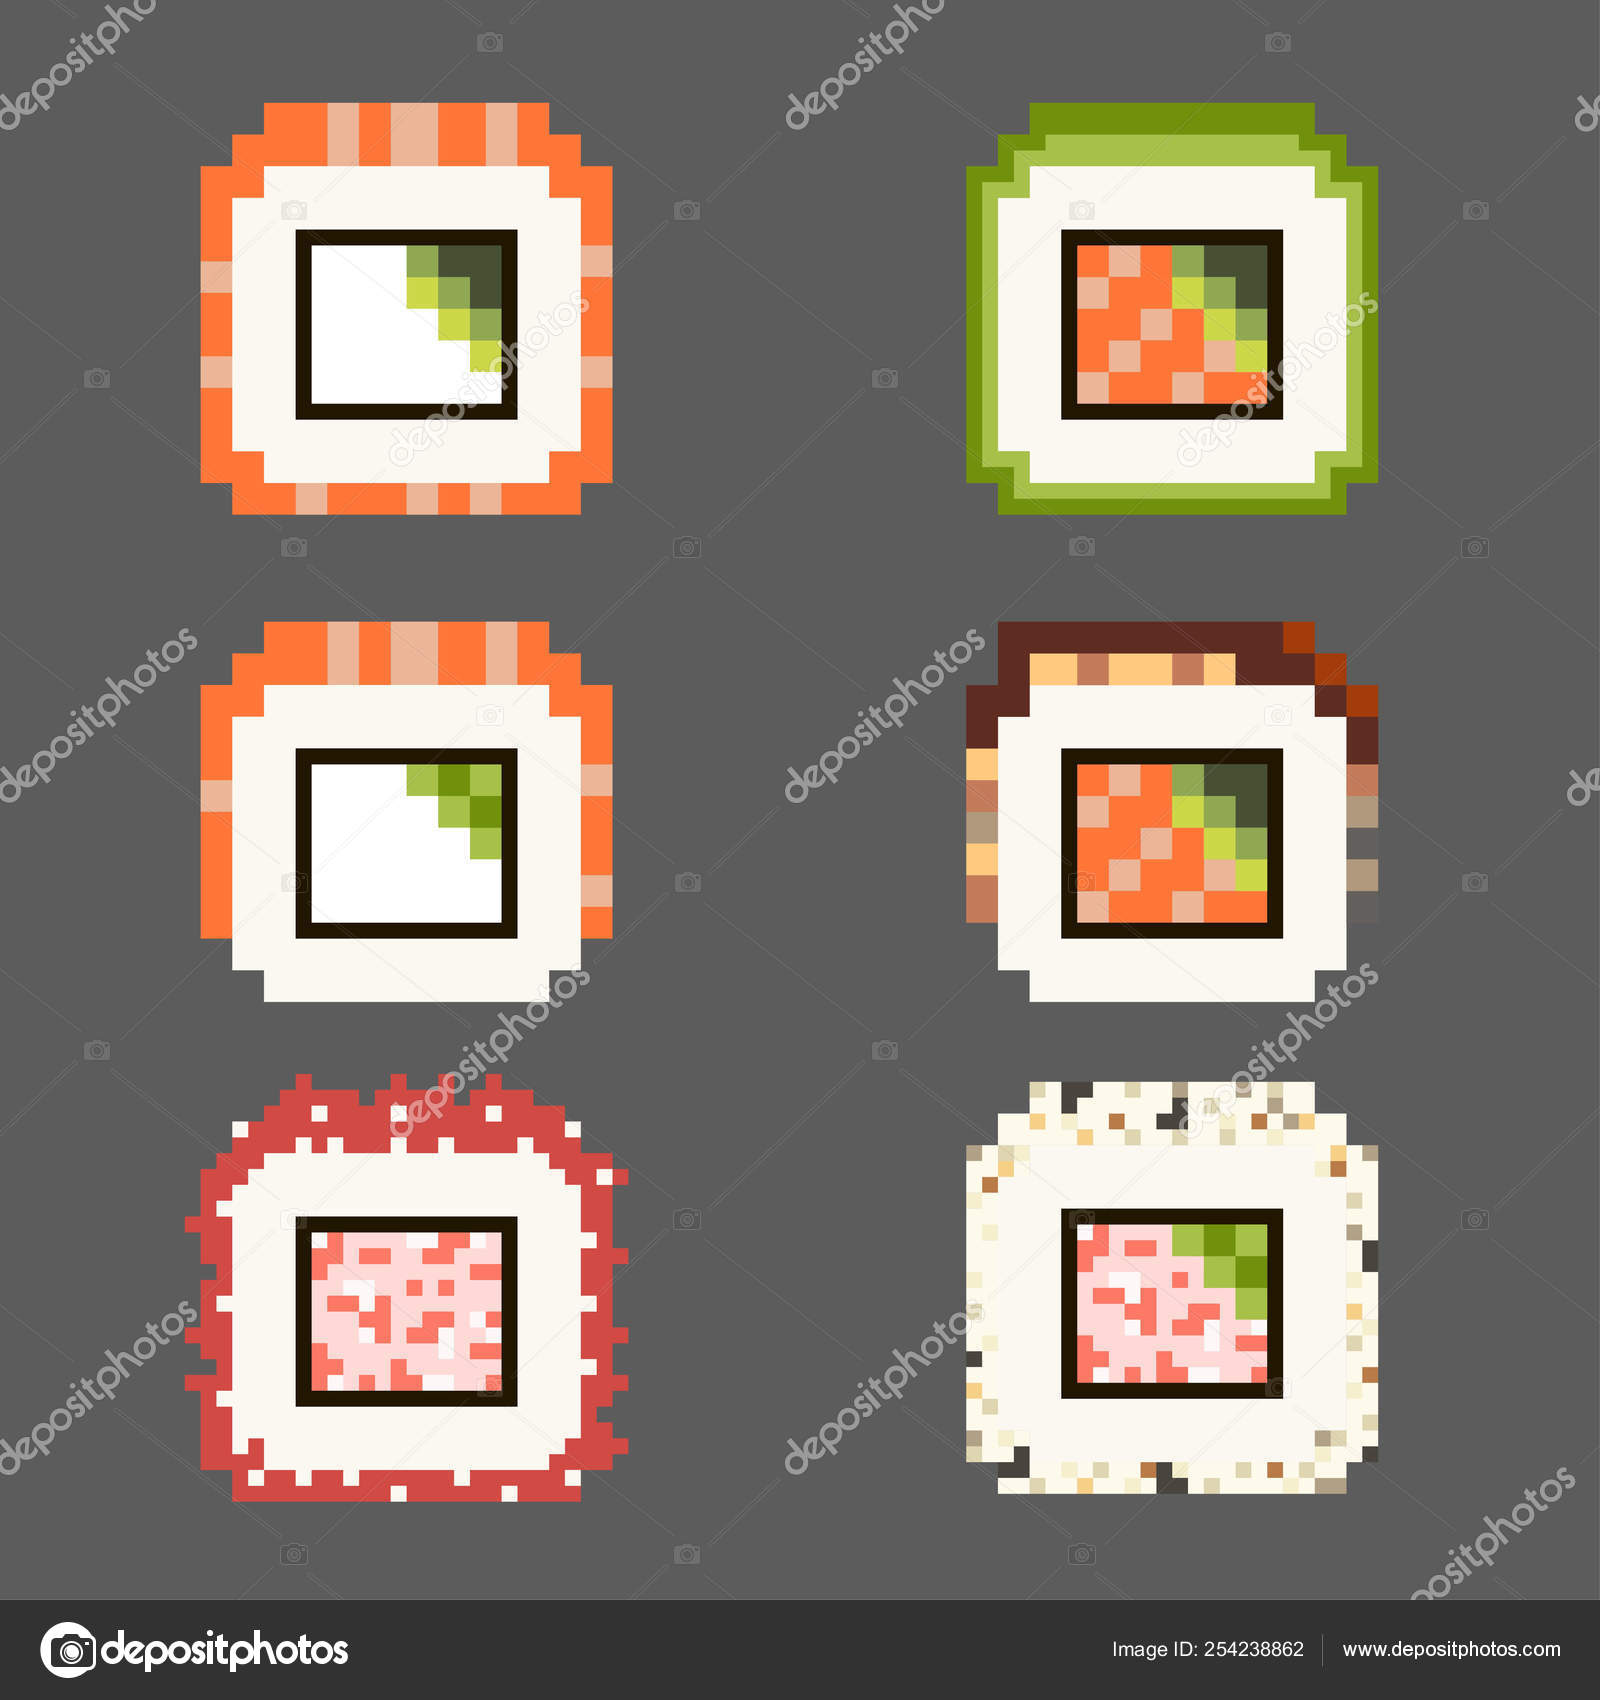 Pixel Art Food Kawaii Pixel Art Food Ikon Sets Japanese